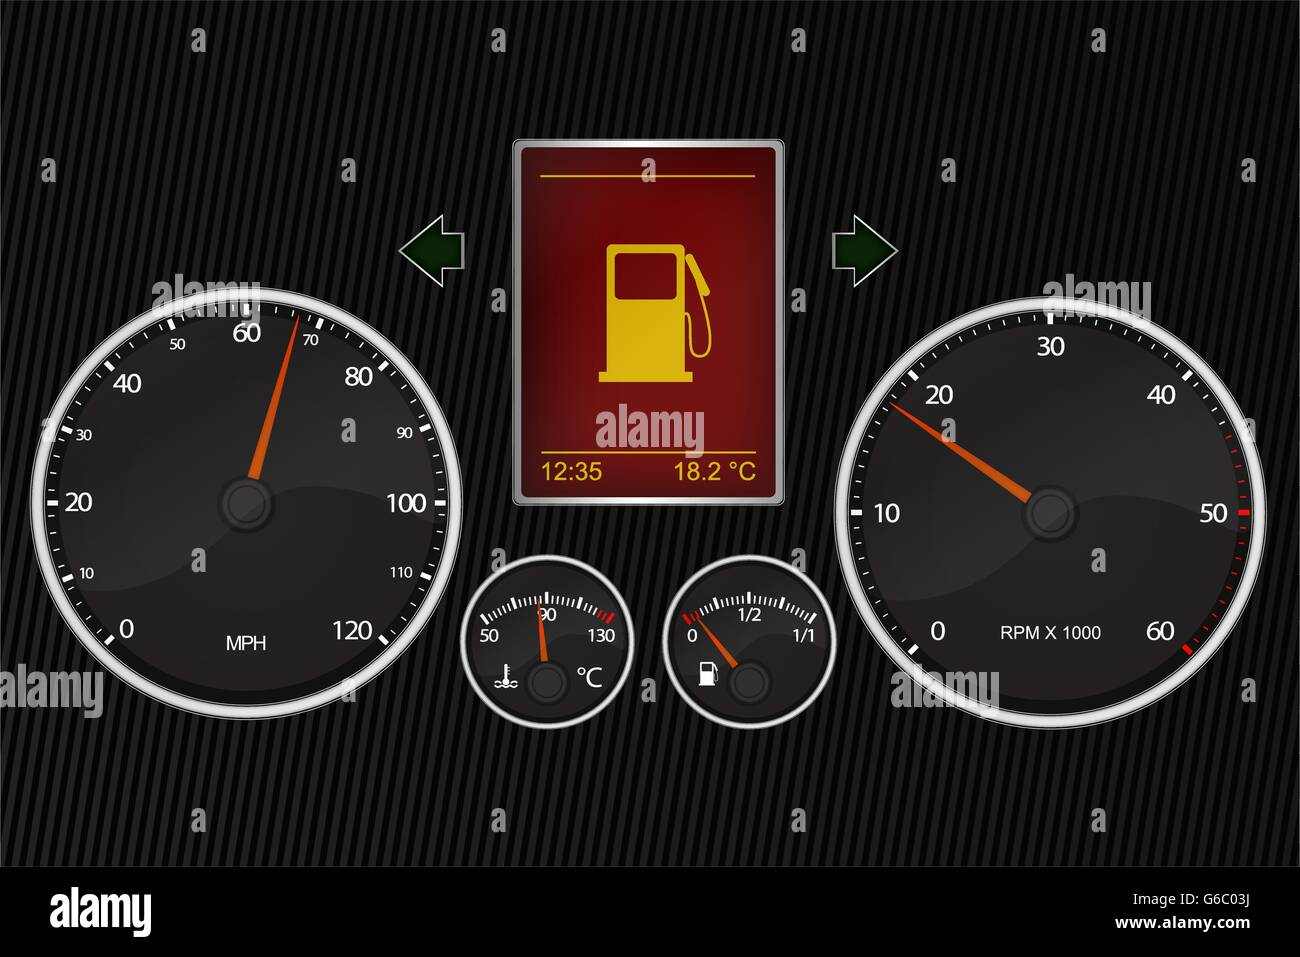 Car Instrument Panel High Resolution Stock Photography And Images Alamy